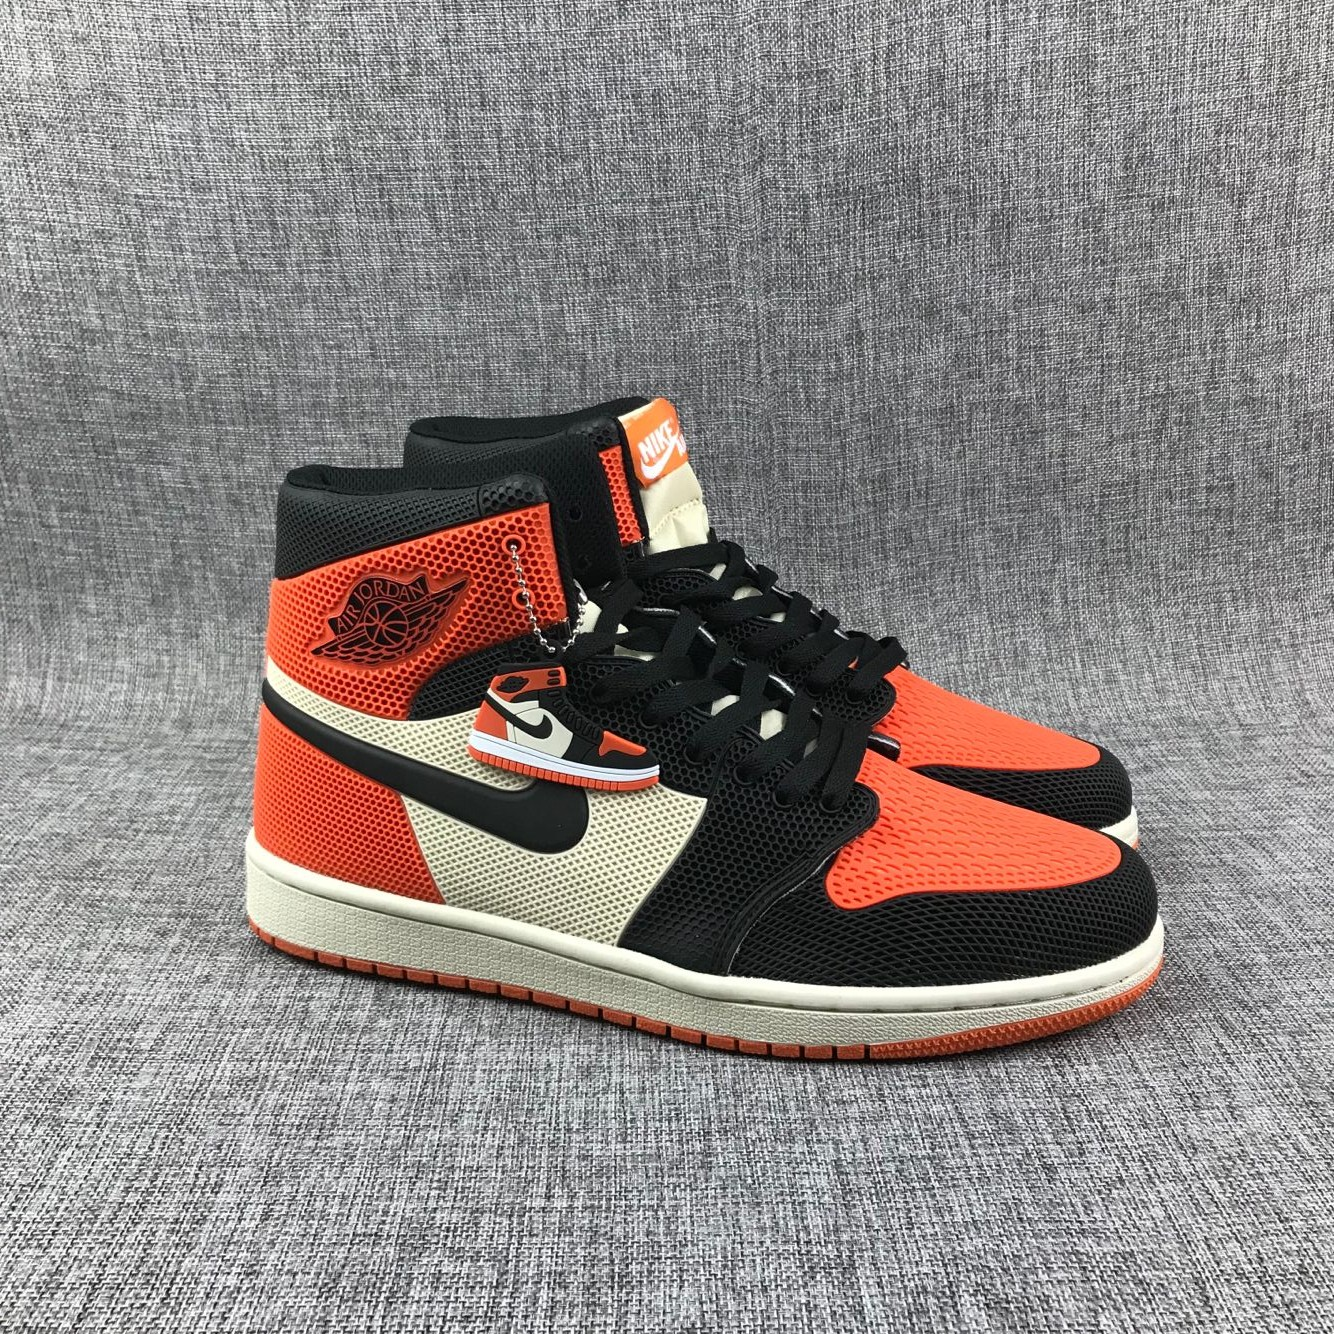 New Air Jordan 1 Drop Plastic Orange Black White Shoes